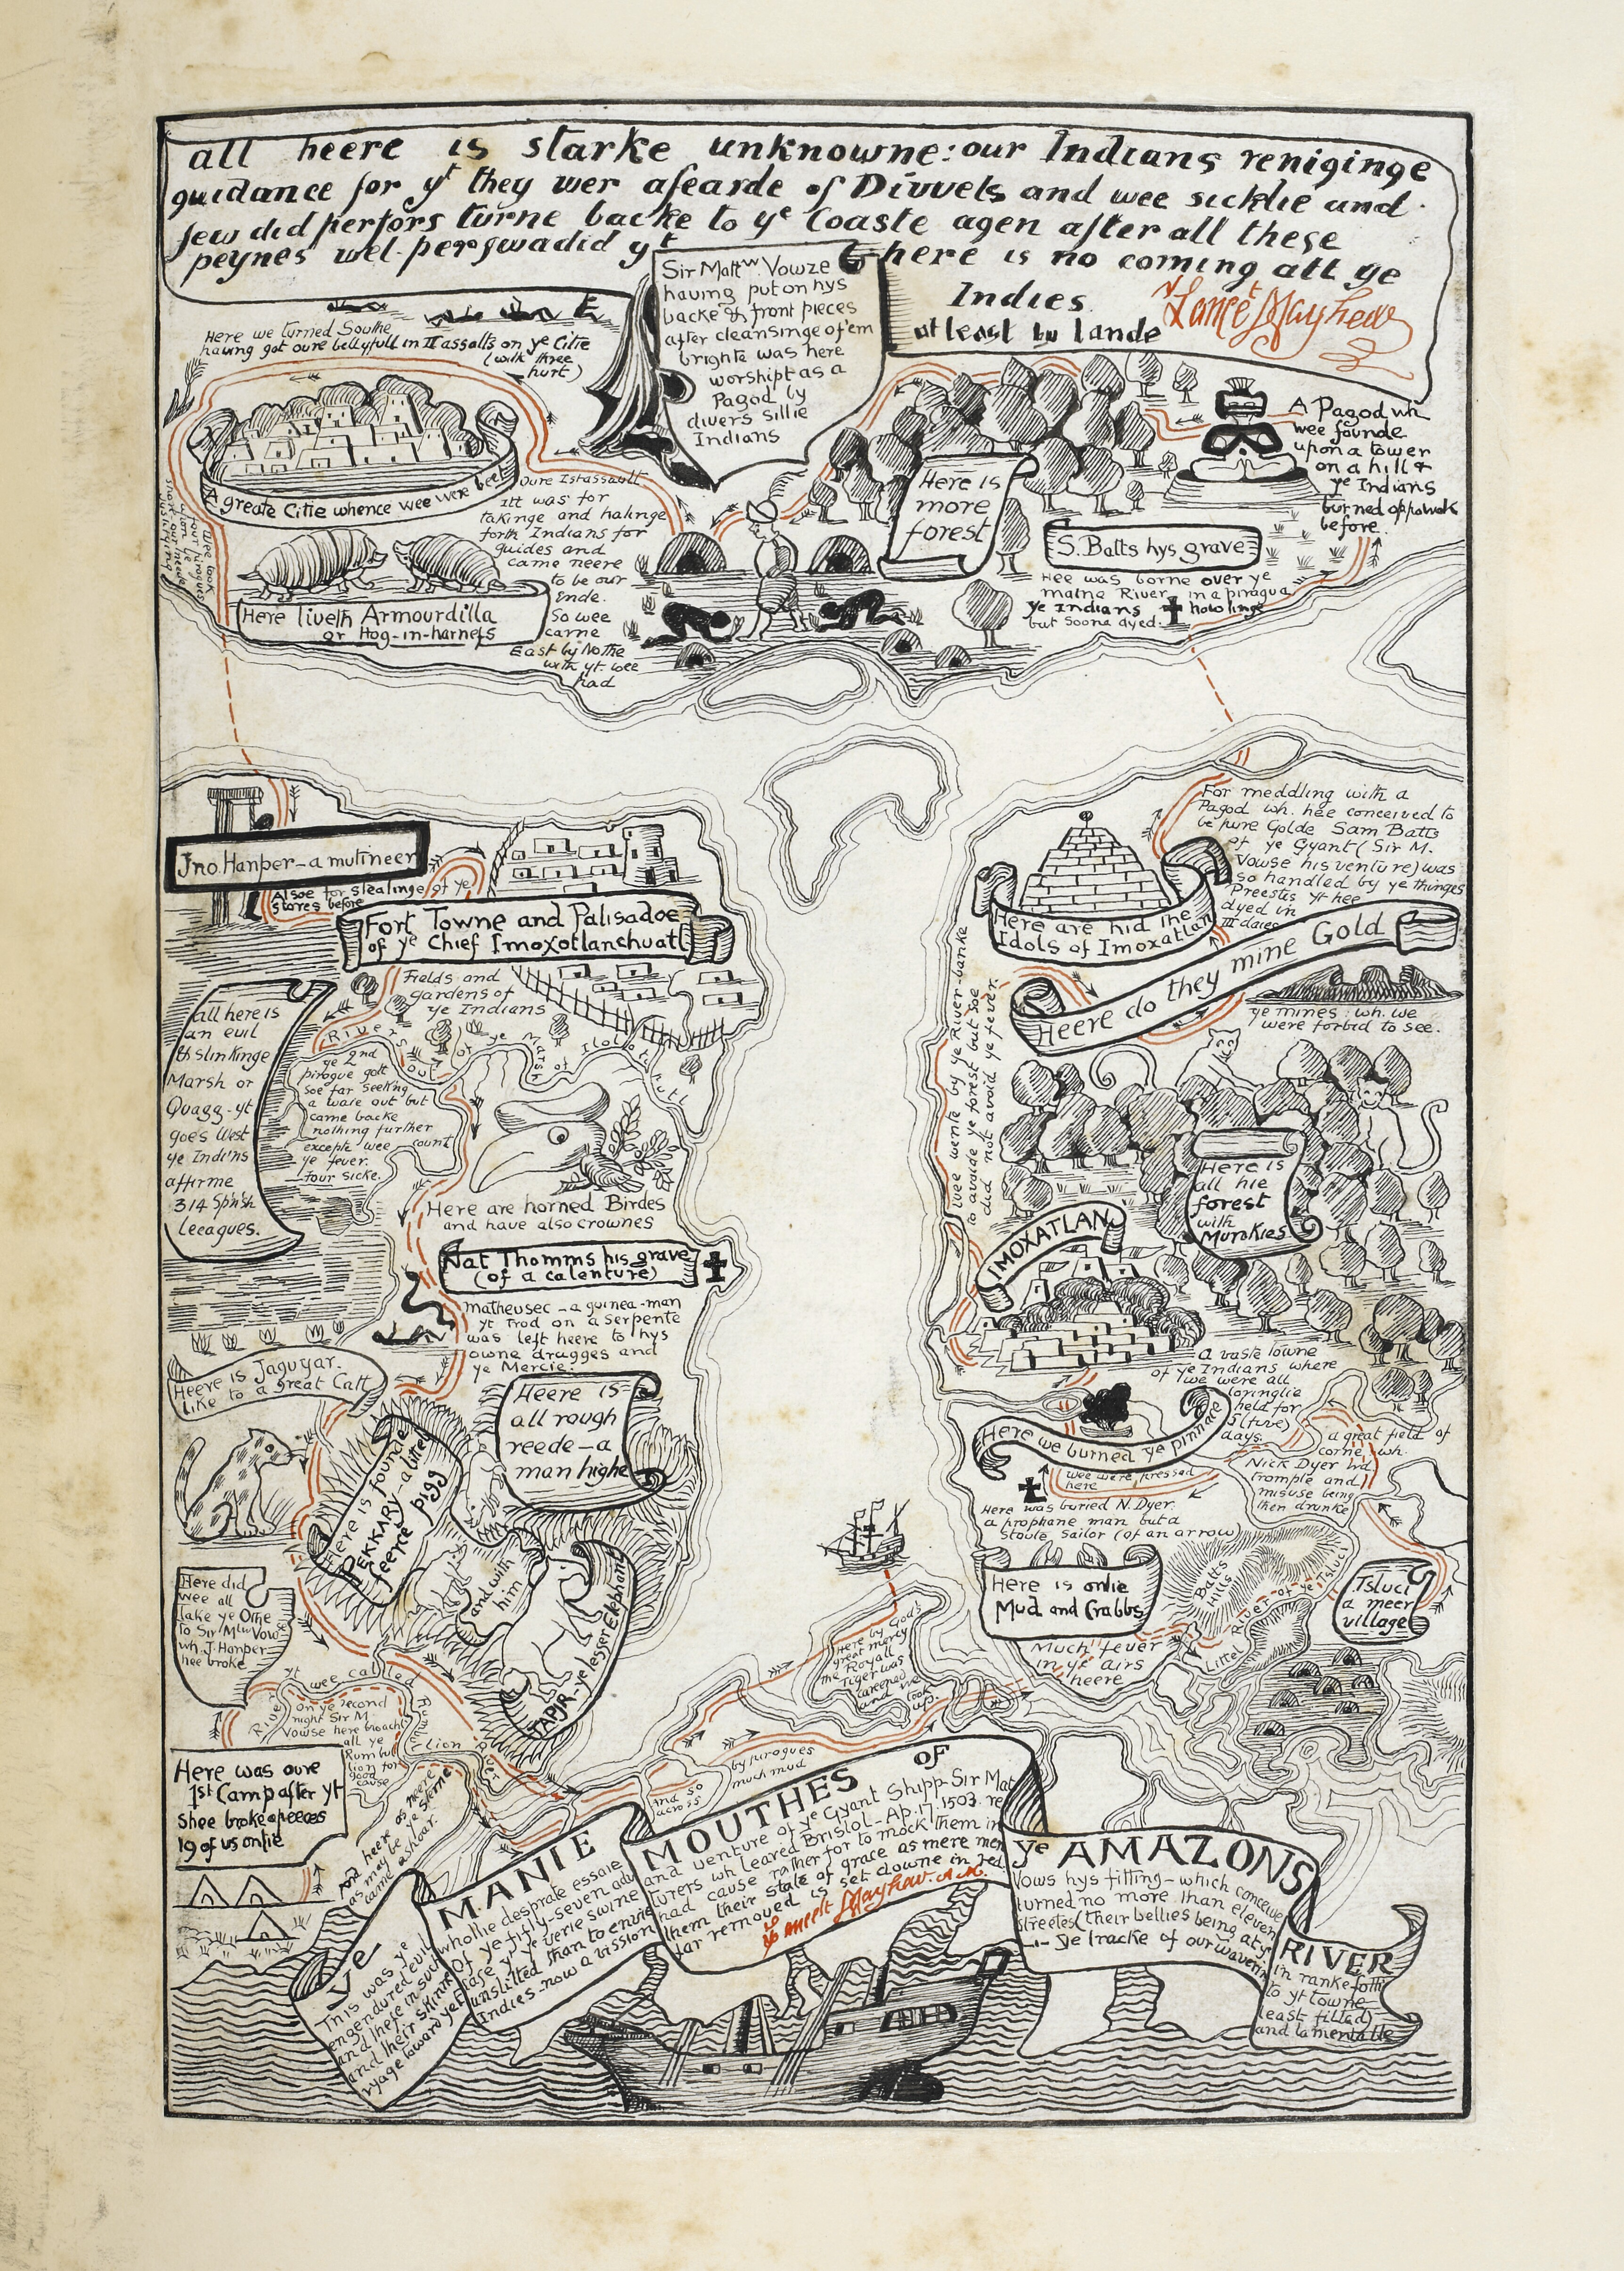 A map made by Rudyard Kipling